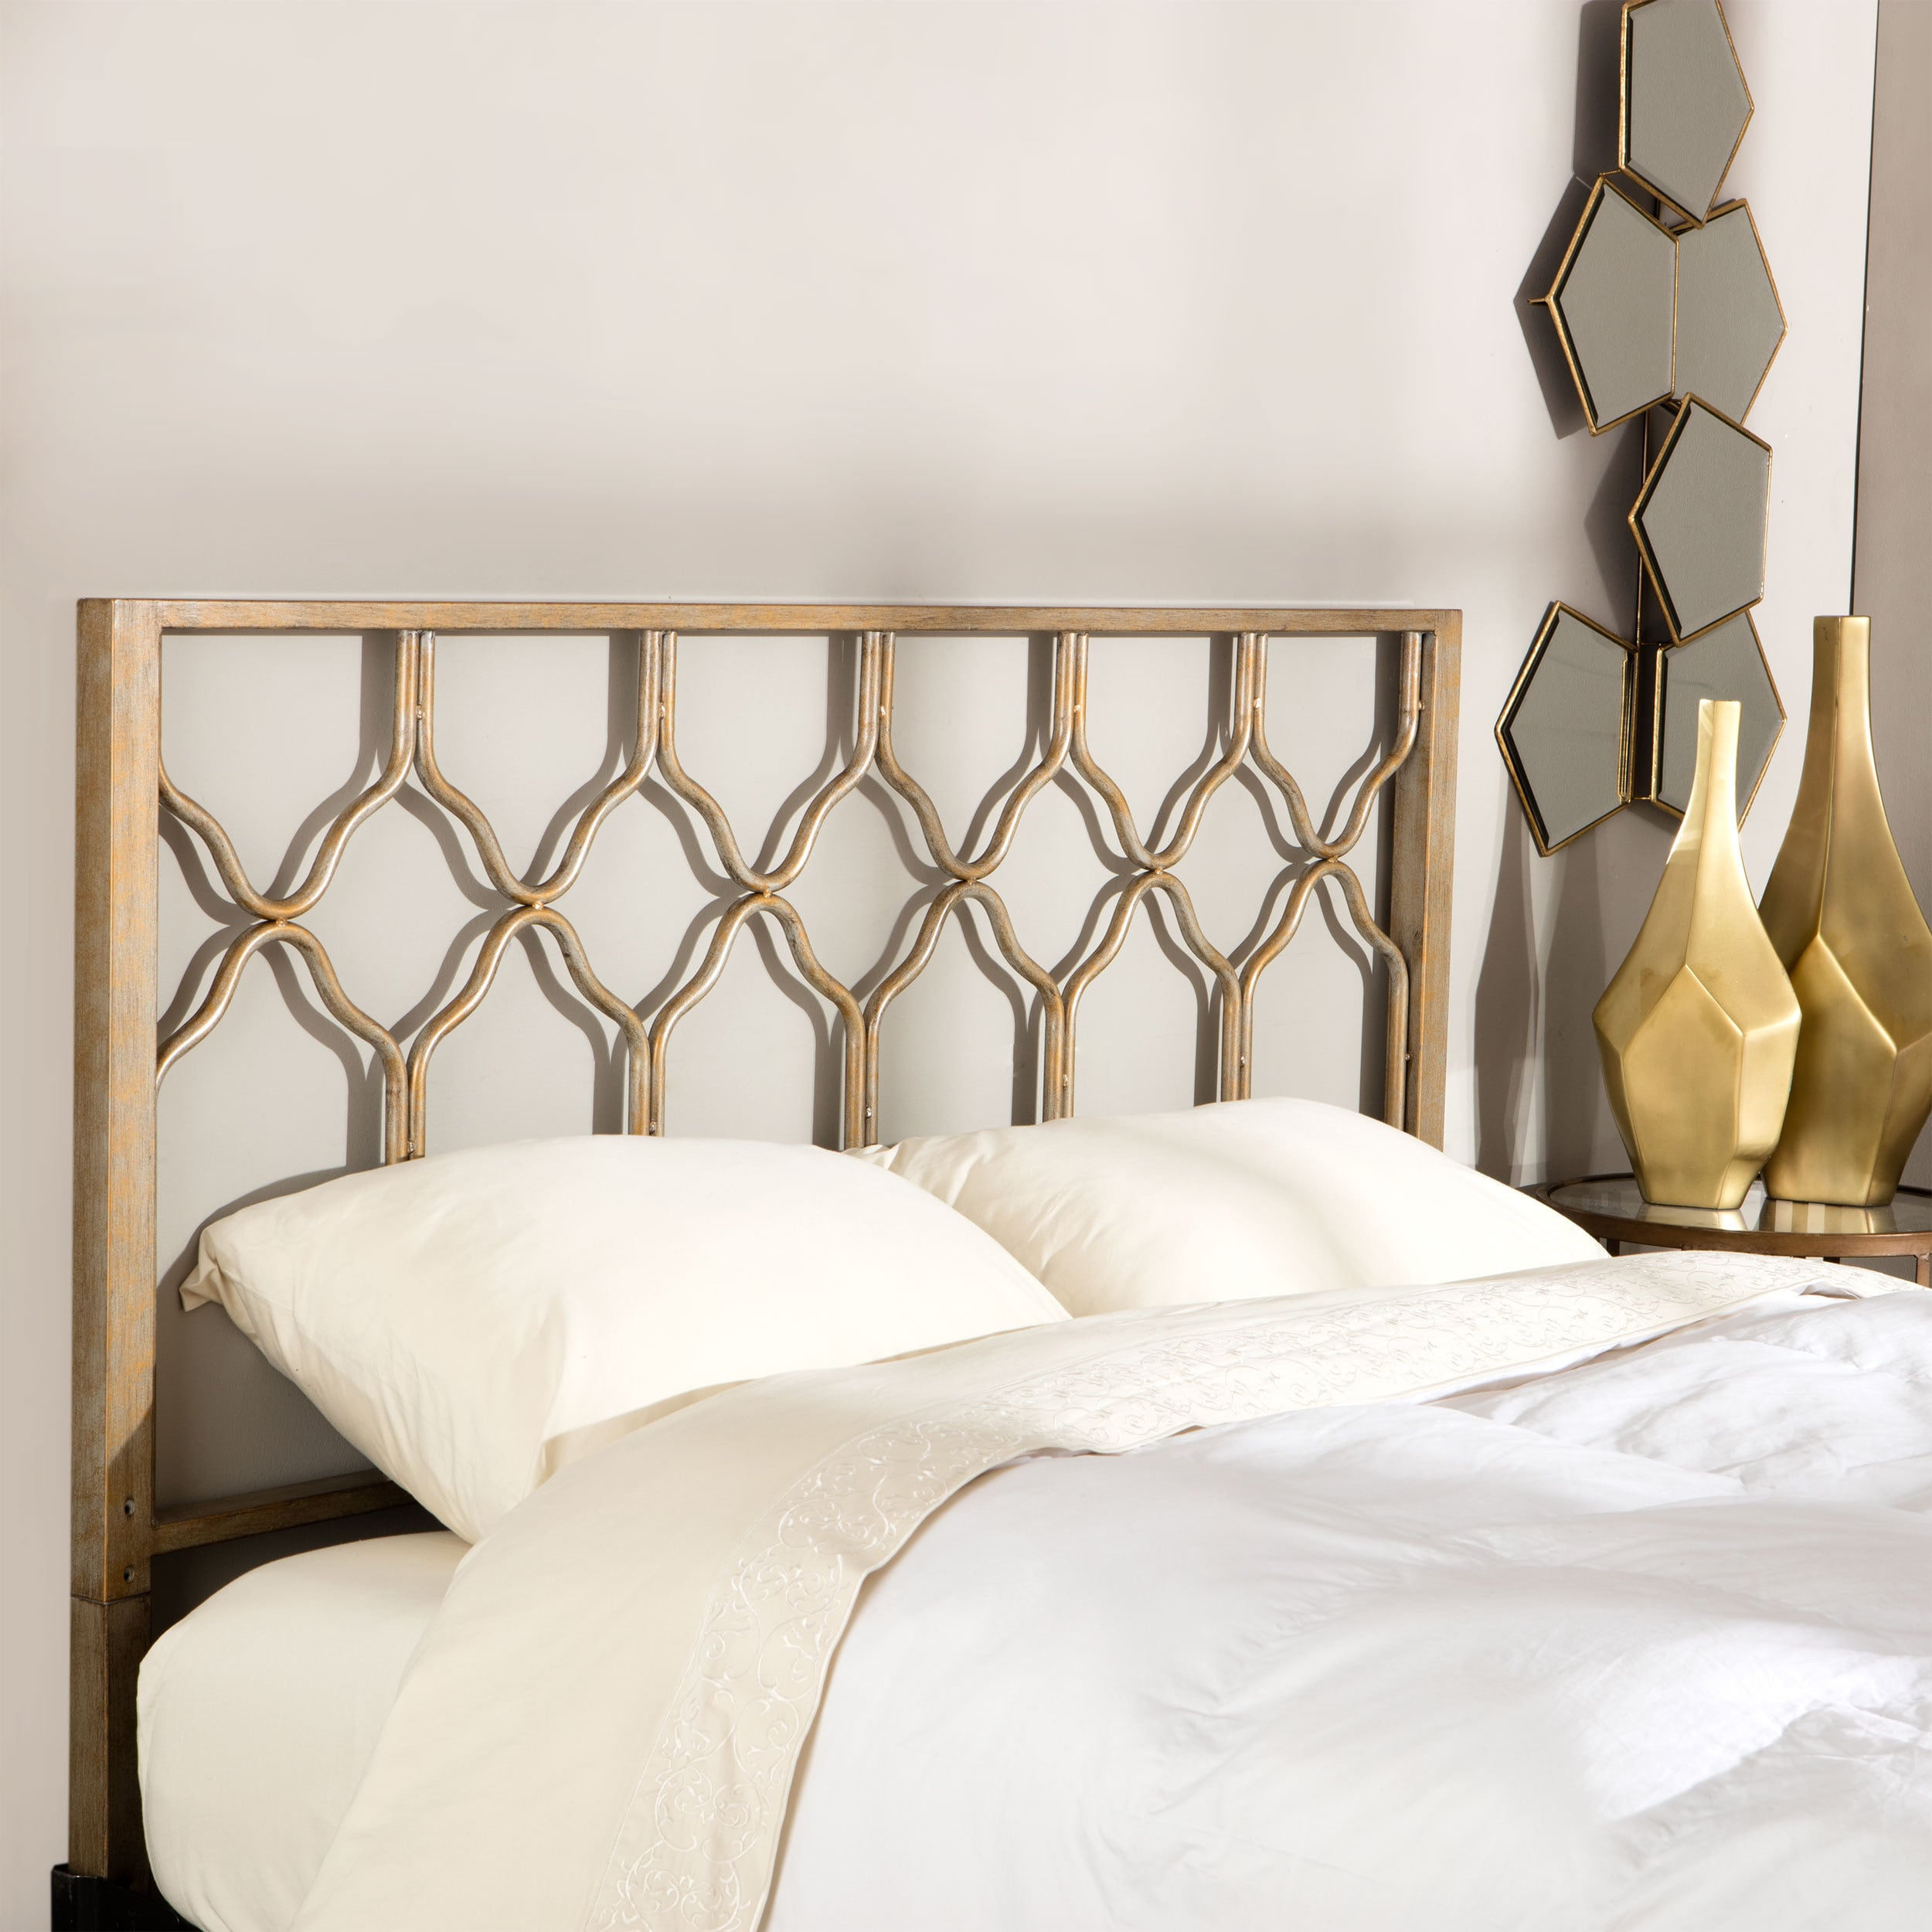 Metal Bed Headboards Buy Metal Headboards Online At Overstock Our Best Bedroom